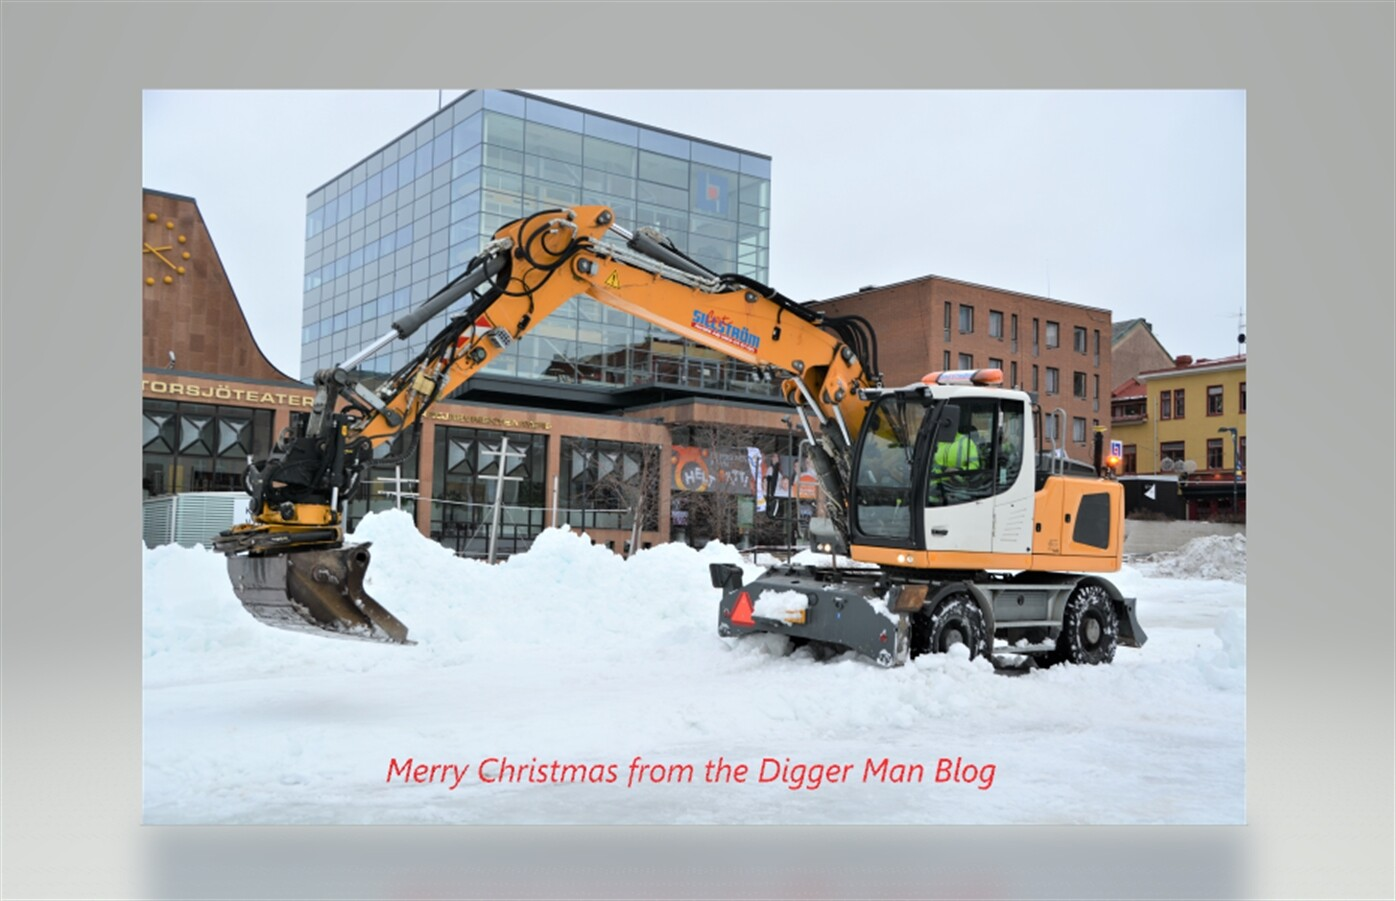 Merry Christmas From Digger Man Blog (Oh What a Year!)